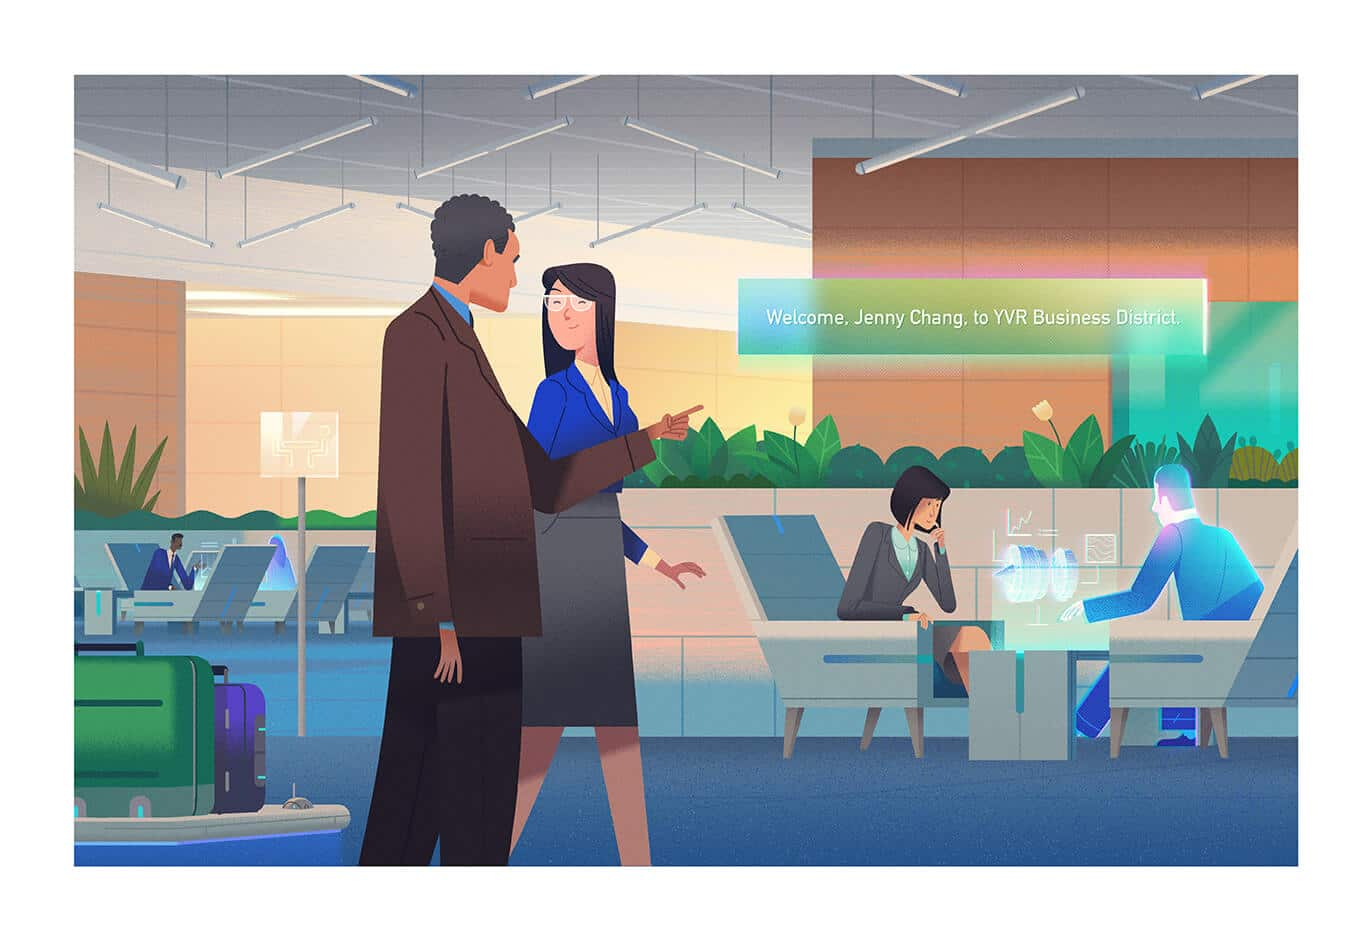 YVR 2037: The Future of Business Travel